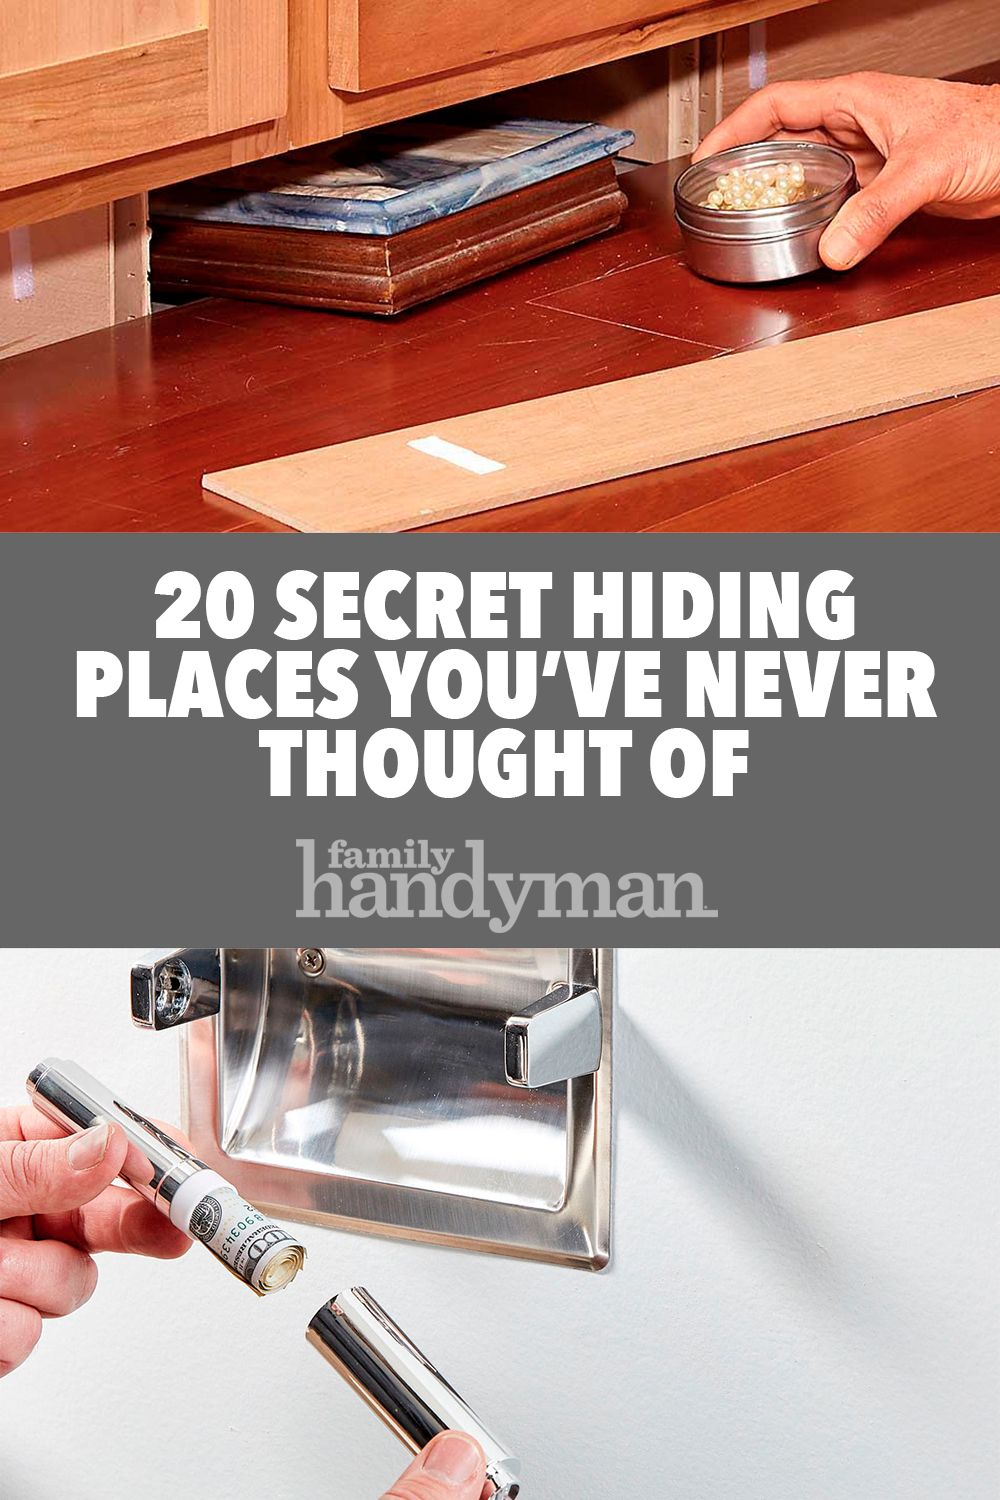 20 Secret Hiding Places You've Never Thought Of